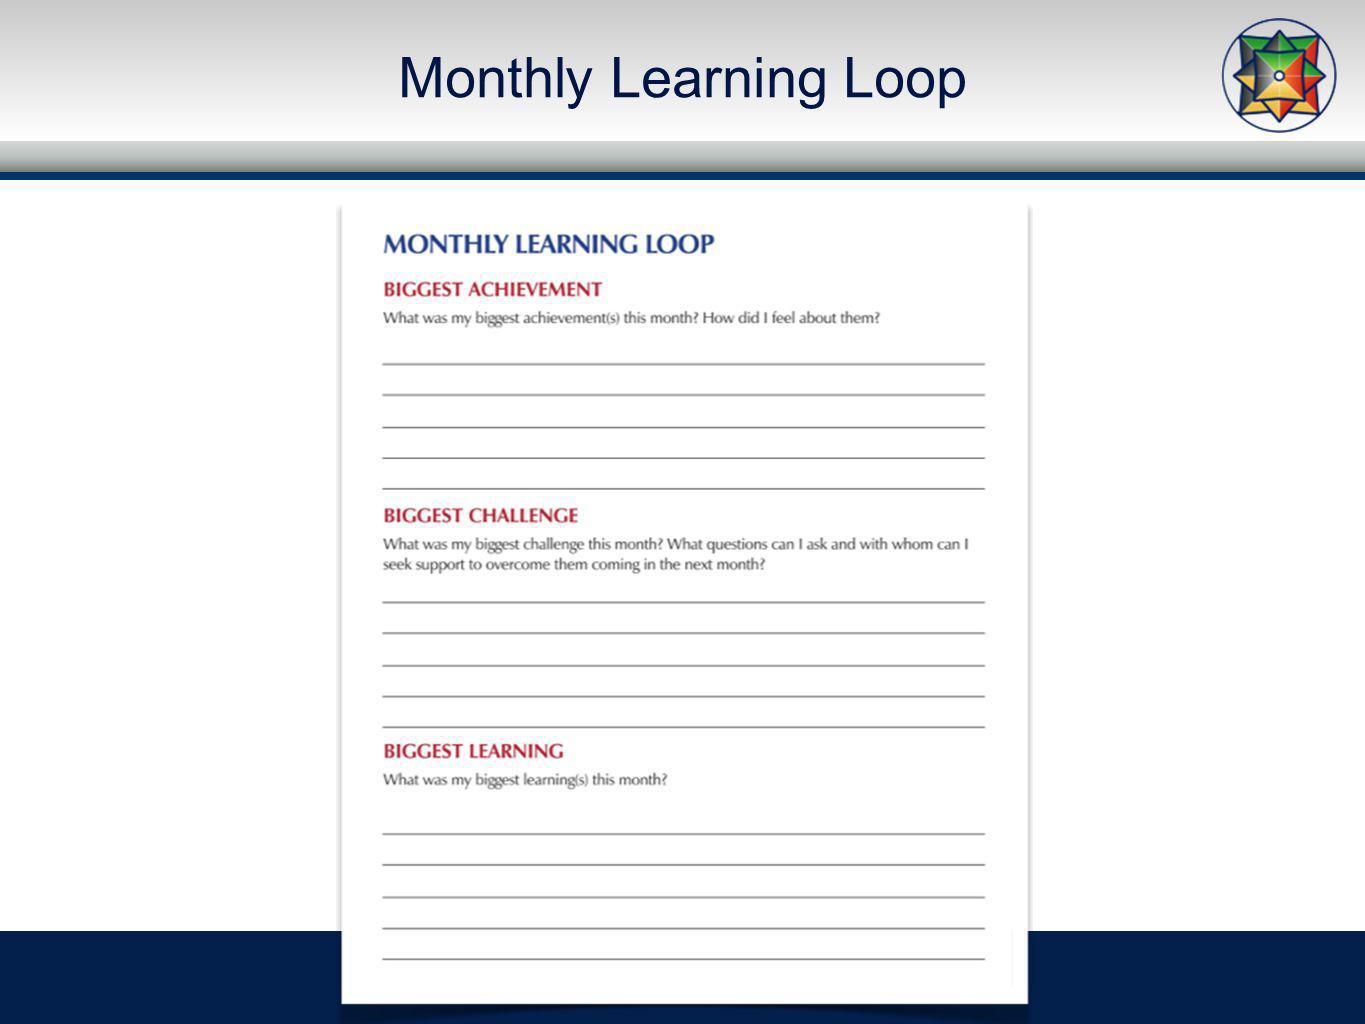 Monthly Learning Loop